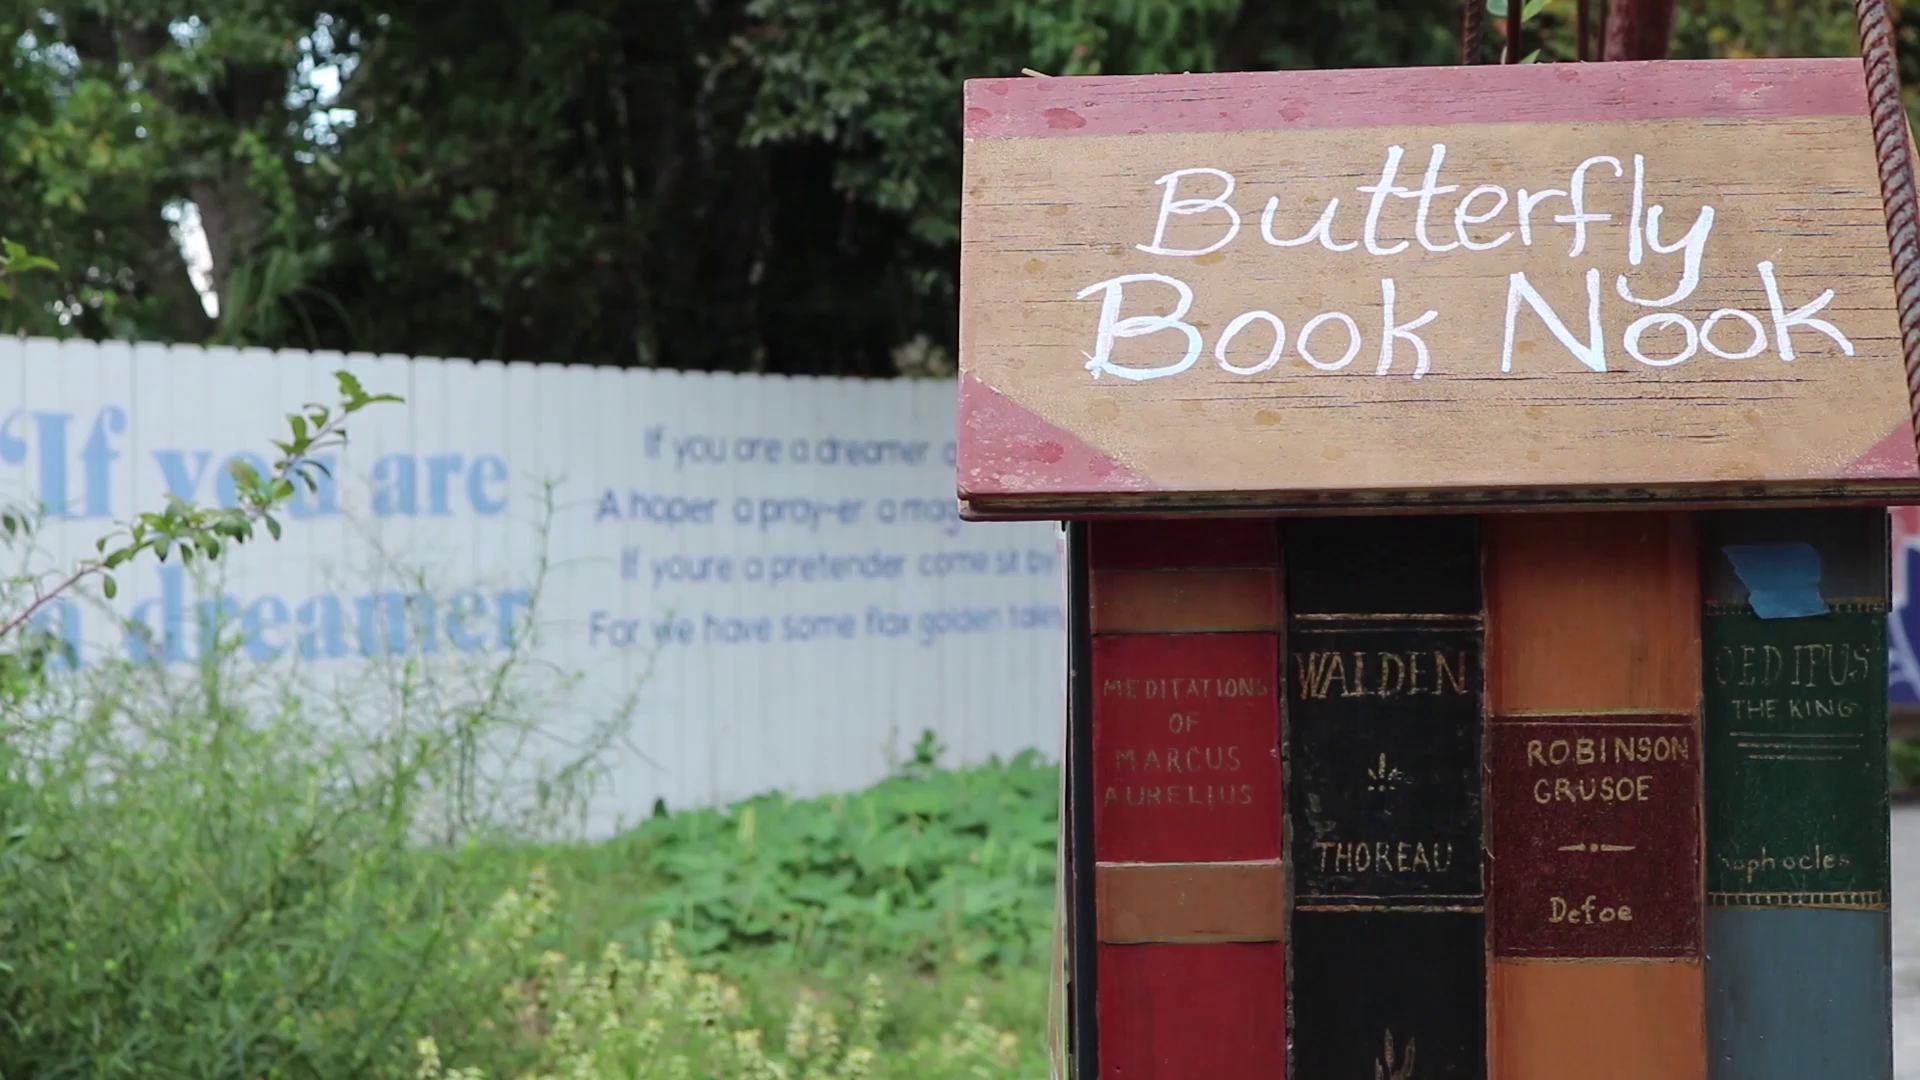 Butterfly Book Nook